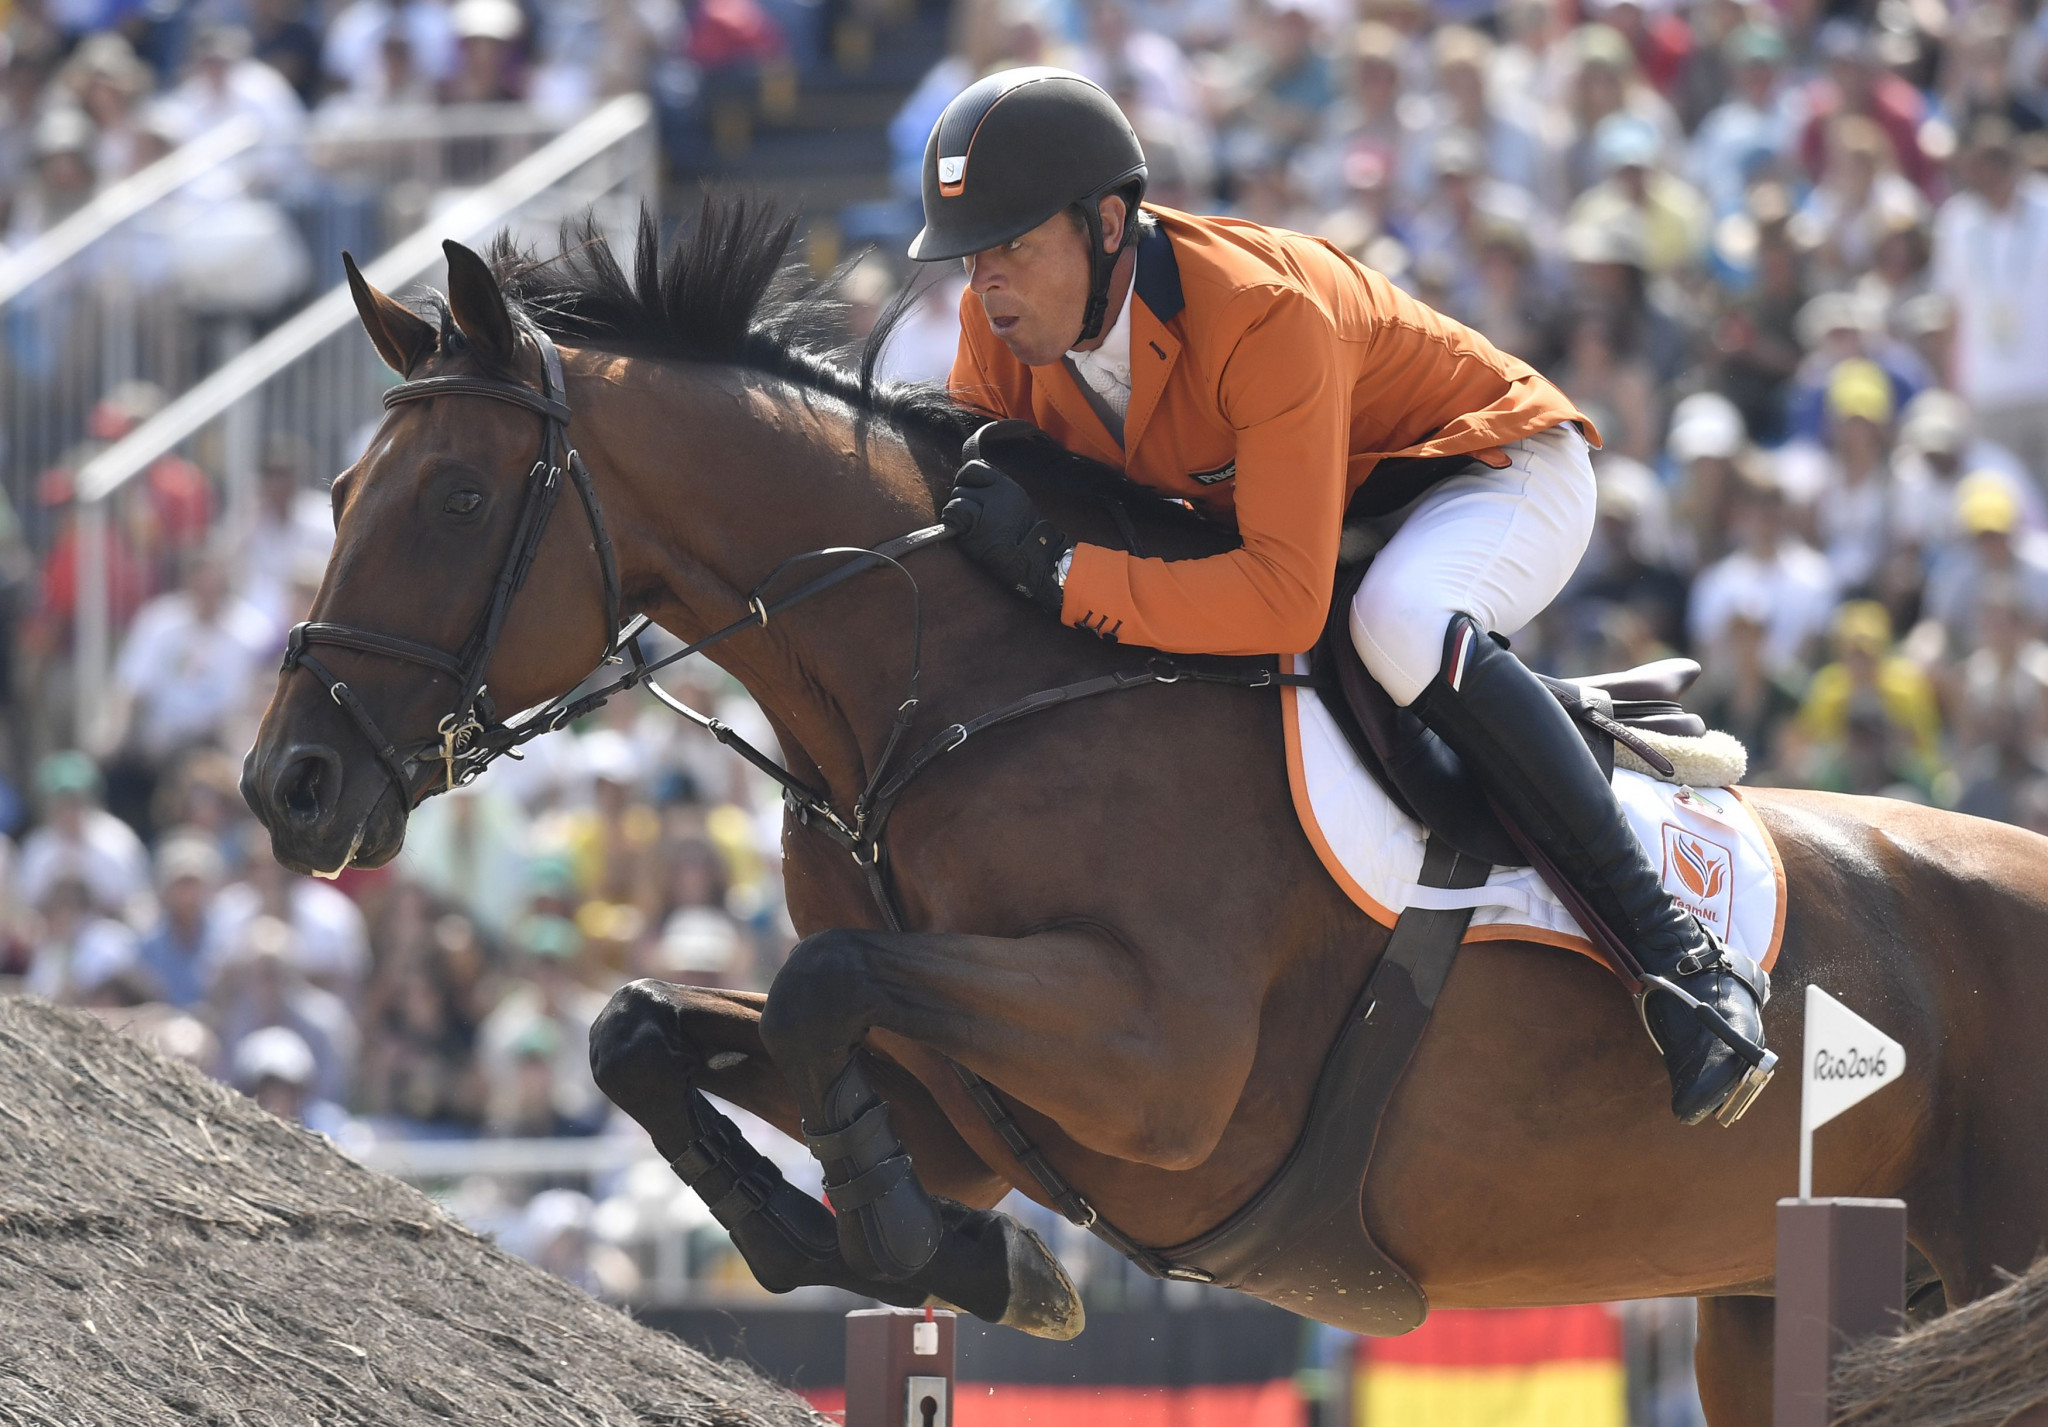 Dubbeldam seeking home victory at FEI Jumping World Cup in Amsterdam